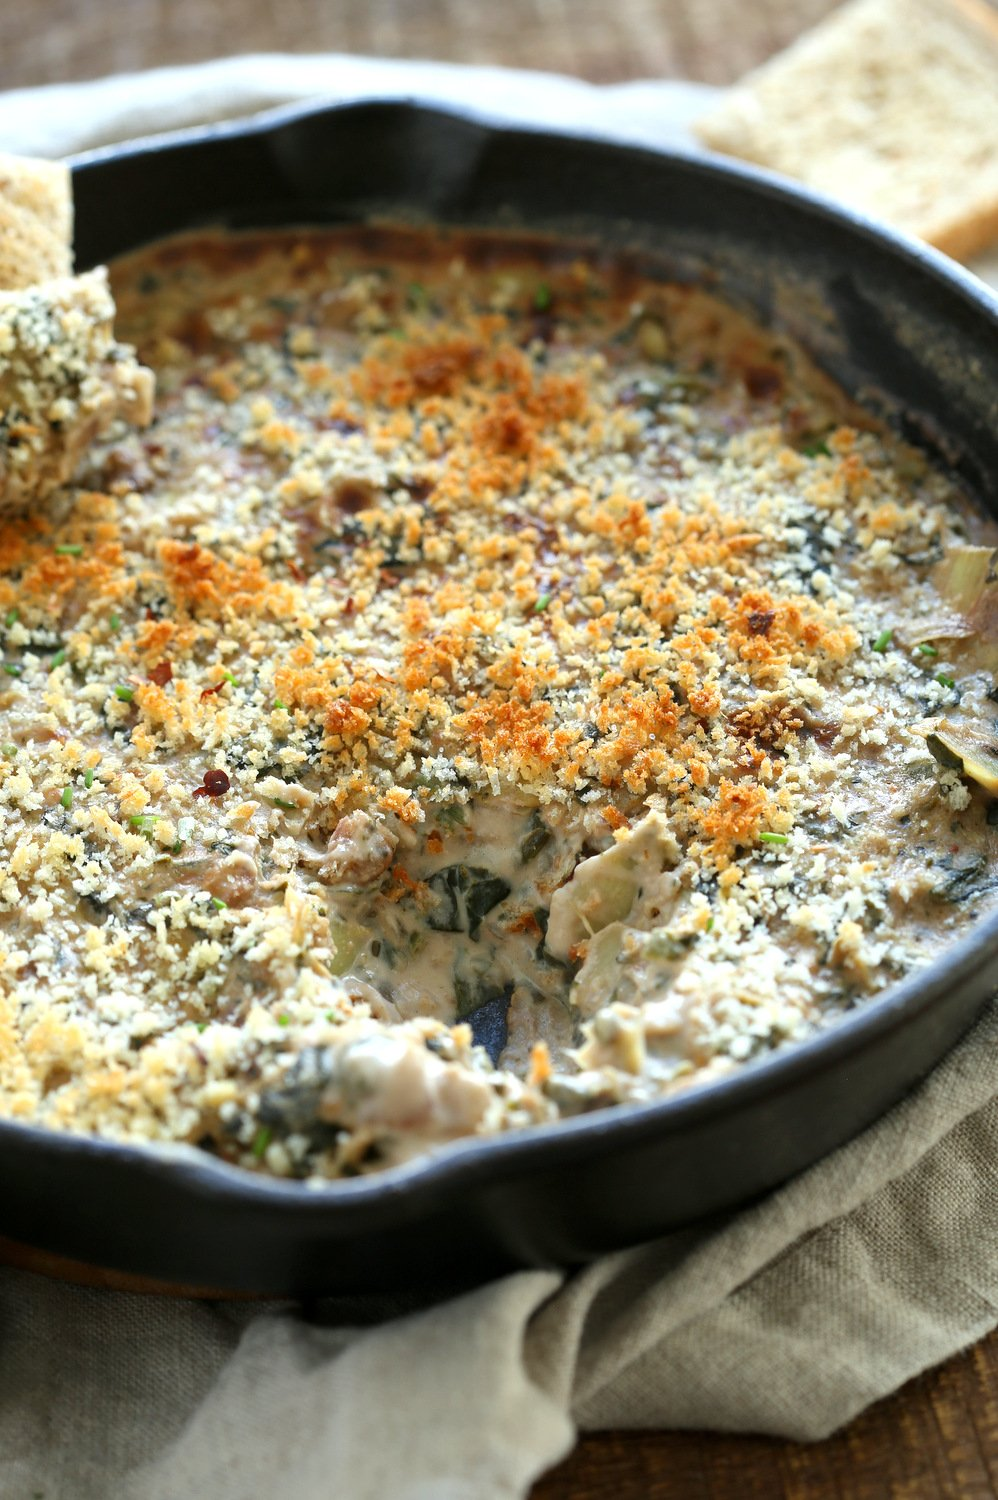 our Vegan Spinach Artichoke Dip in a cast iron skillet